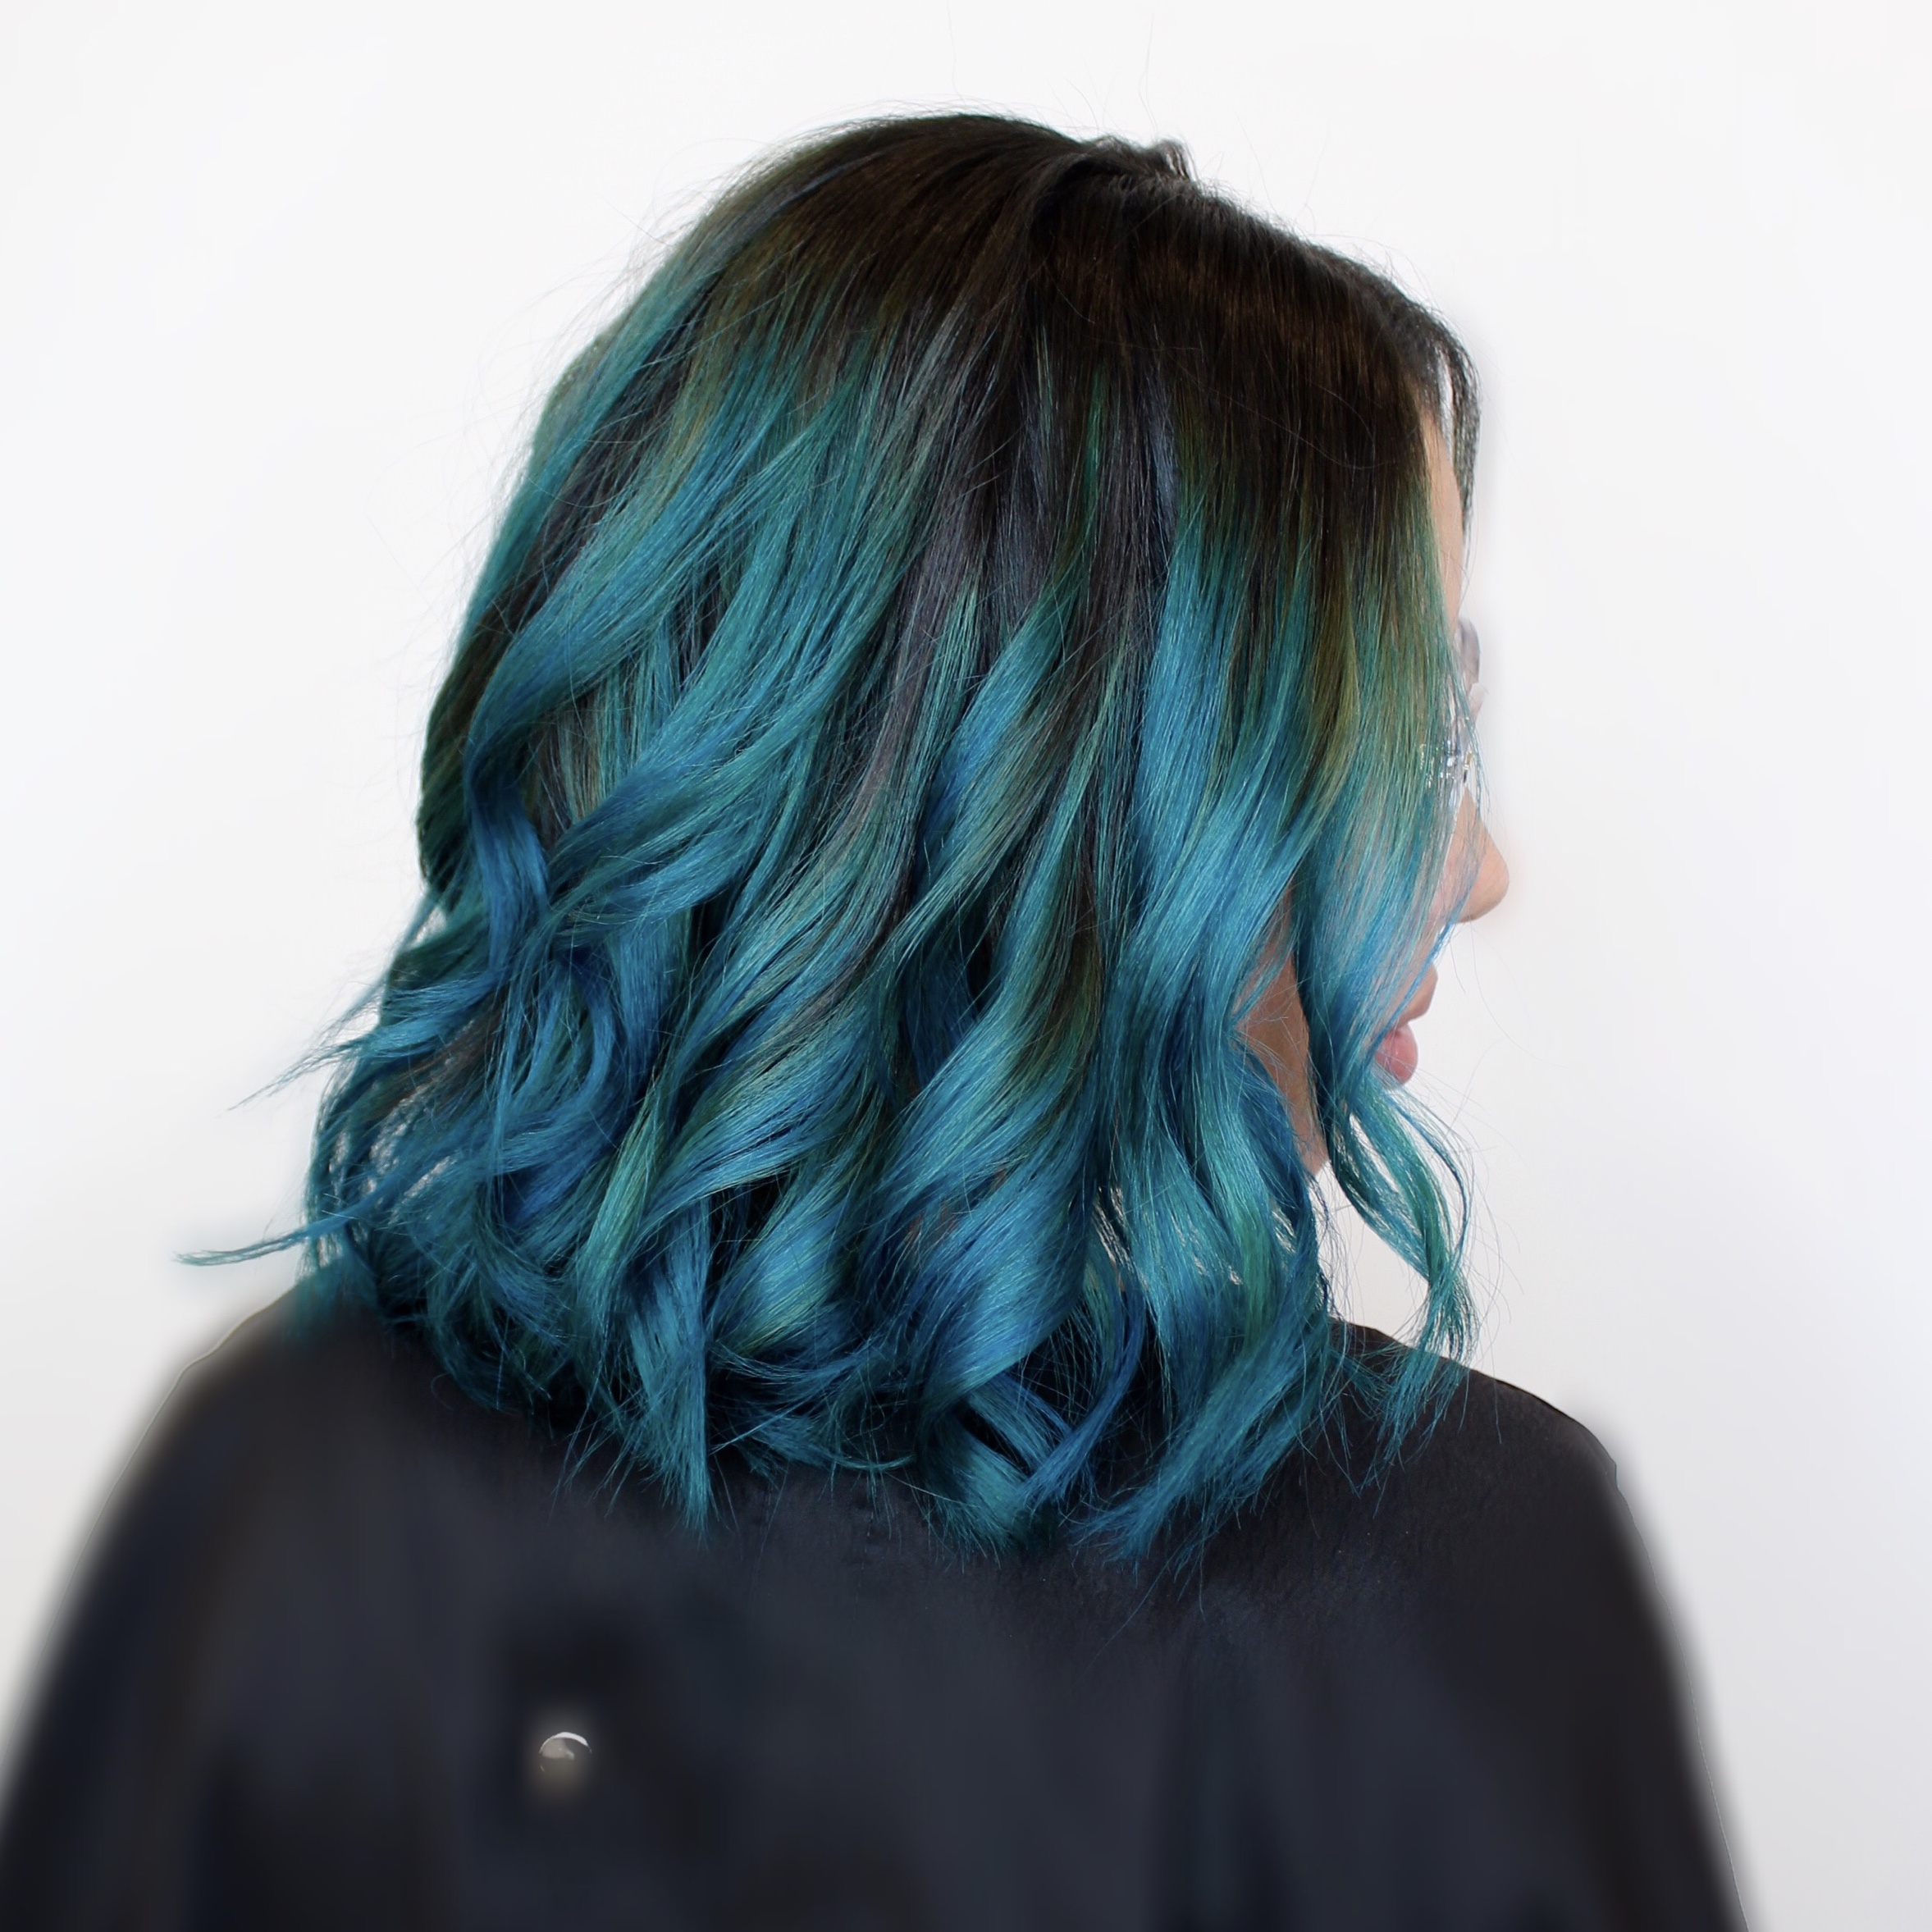 Ocean Blue - With edgy colors on the rise and stylist perfecting their